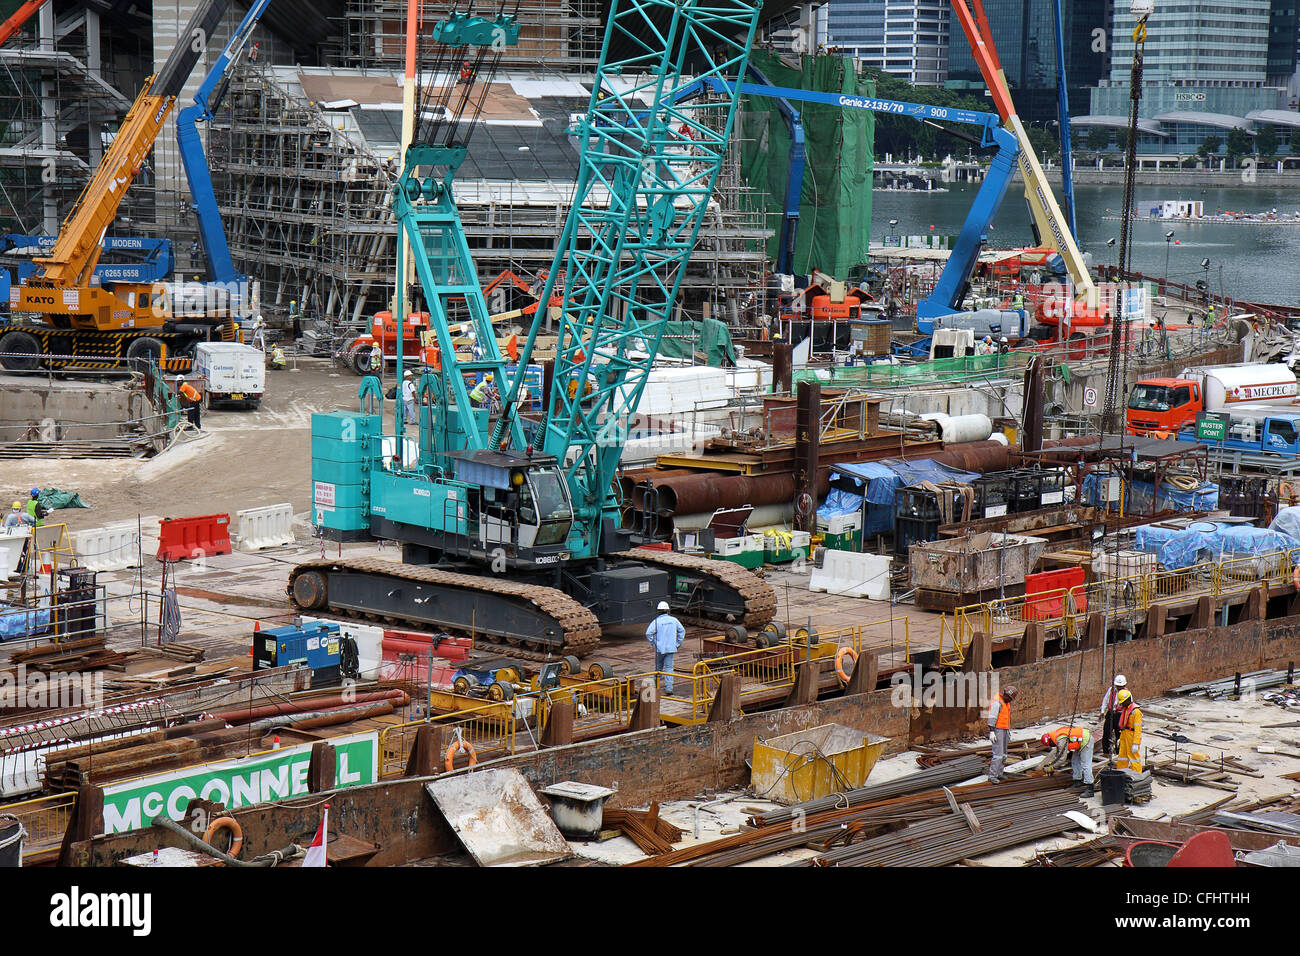 August 21, 2010, Marina Bay, Singapore: Construction work in progress in the city center. - Stock Image